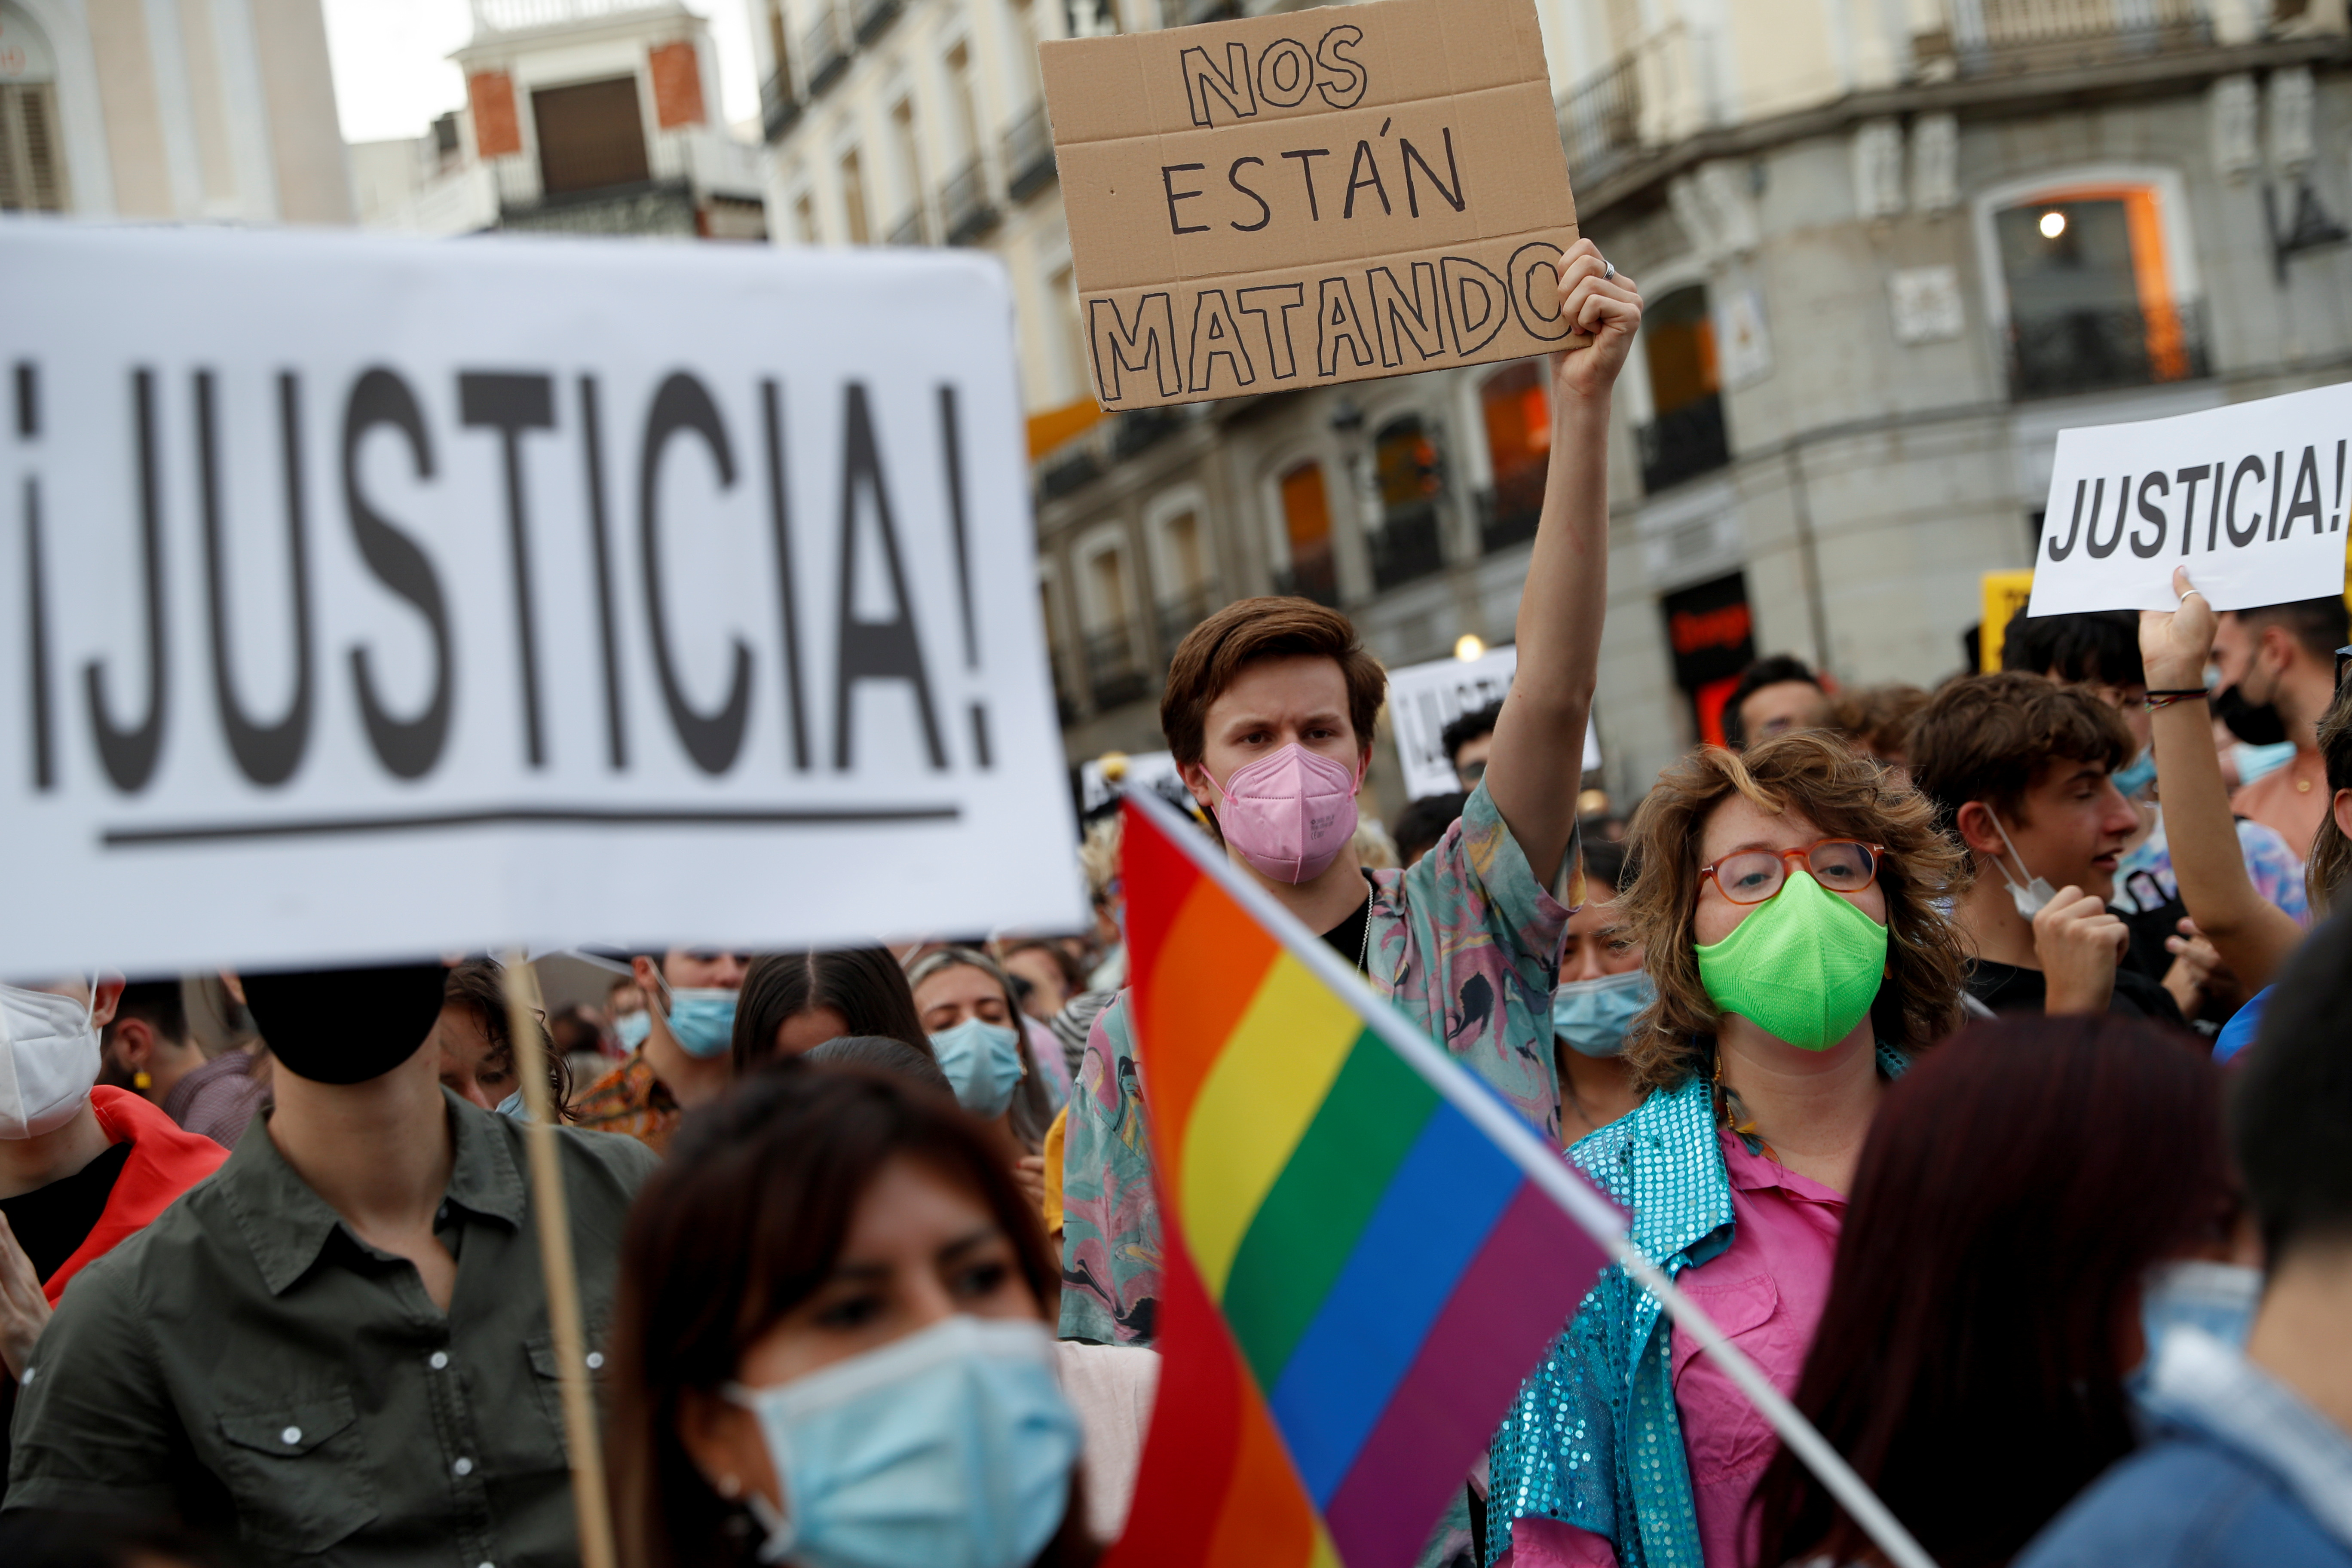 LGBTIQ+ activists and supporters demonstrate against hate crimes at Puerta del Sol square in Madrid, Spain, September 11, 2021. The signs read: